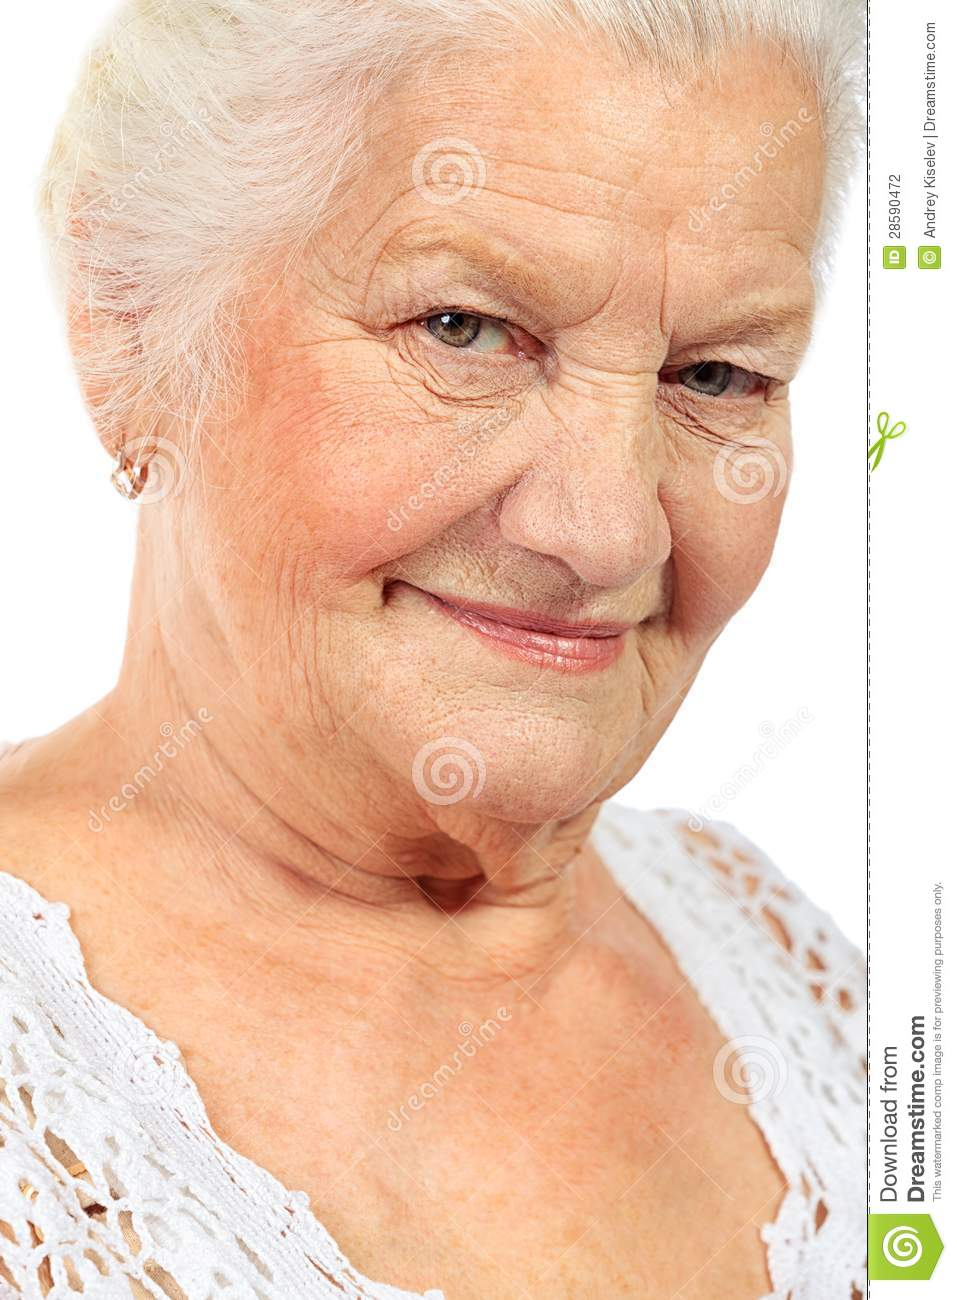 Granny facial thumbs